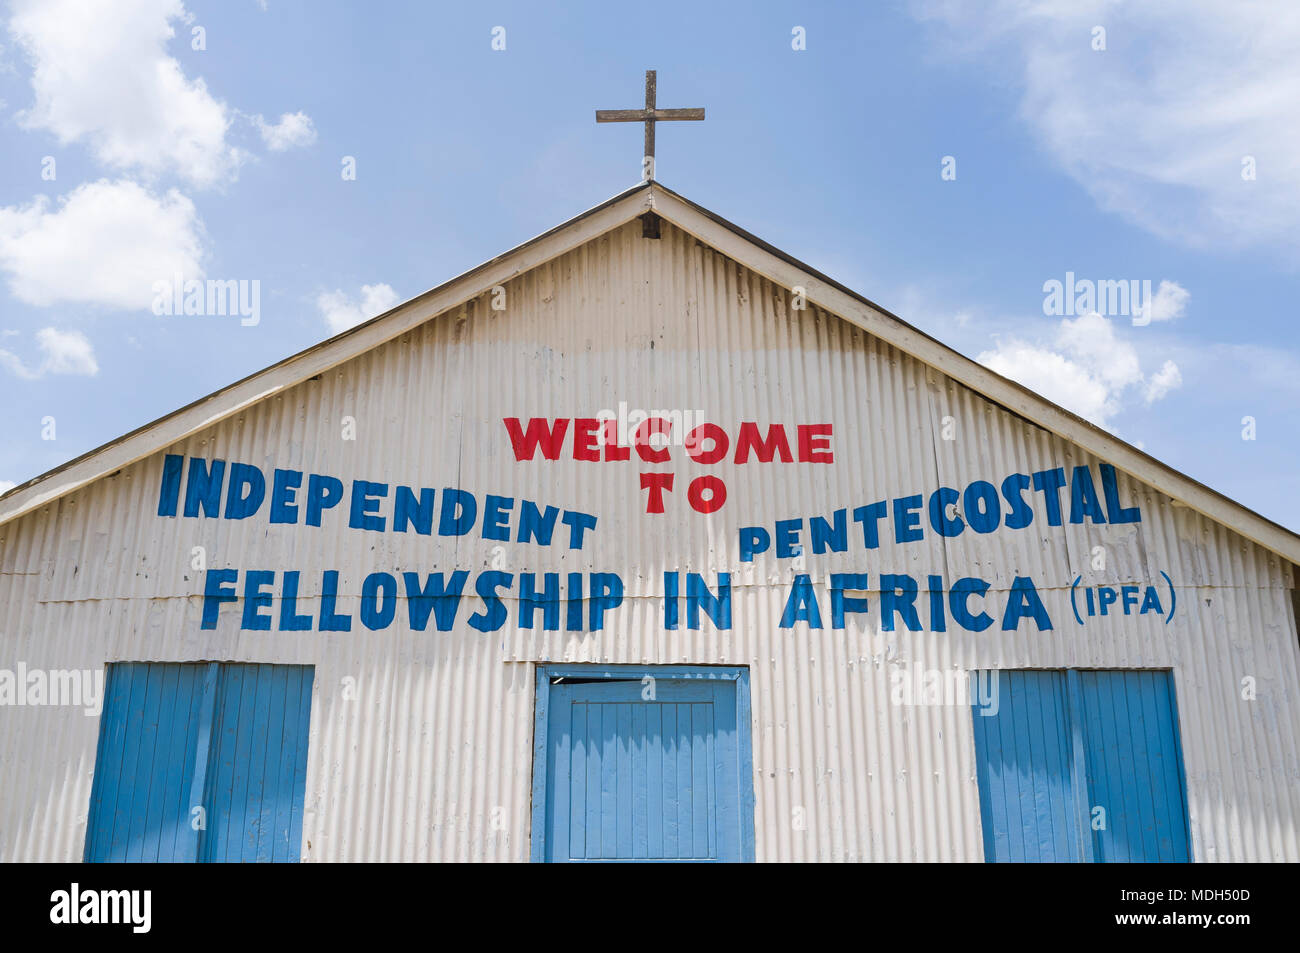 Independent Pentecostal Fellowship in Africa Church, Ngong Road, Nairobi, Kenya Stock Photo